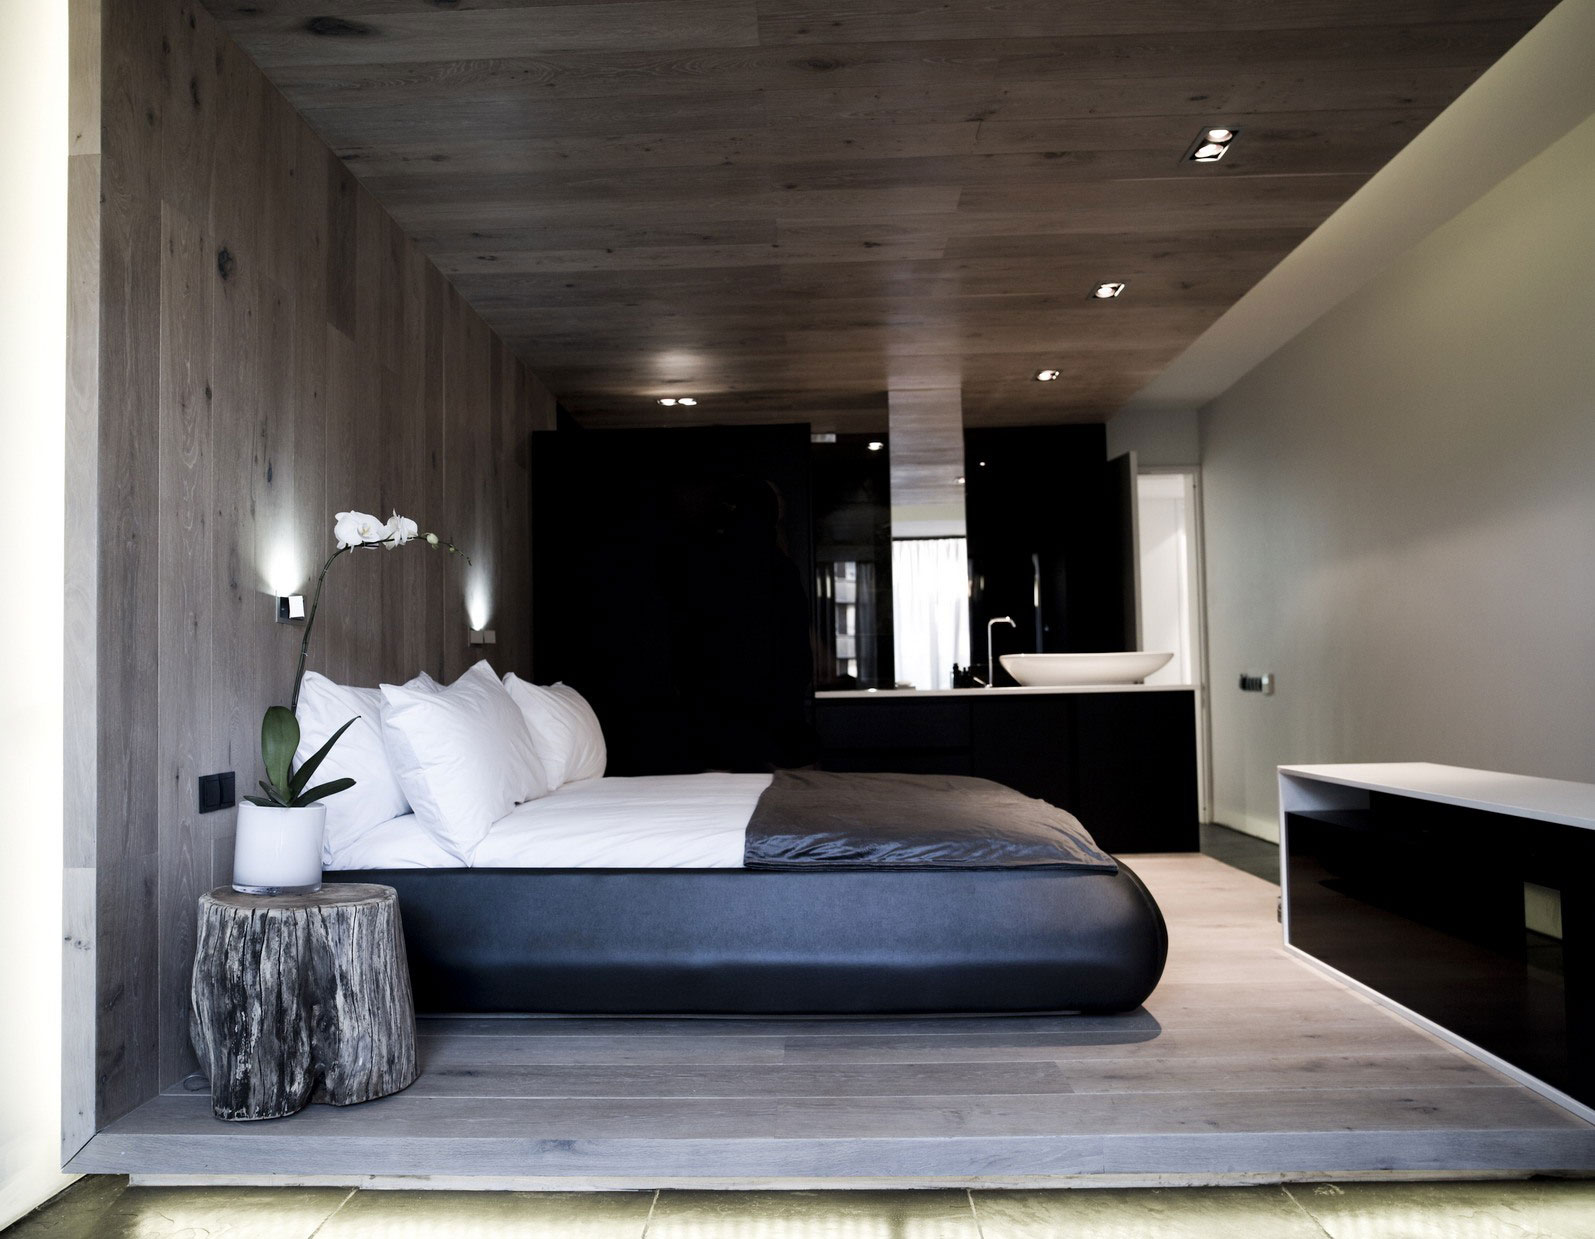 Pod boutique hotel by greg wright architects caandesign for Boutique hotel rooms